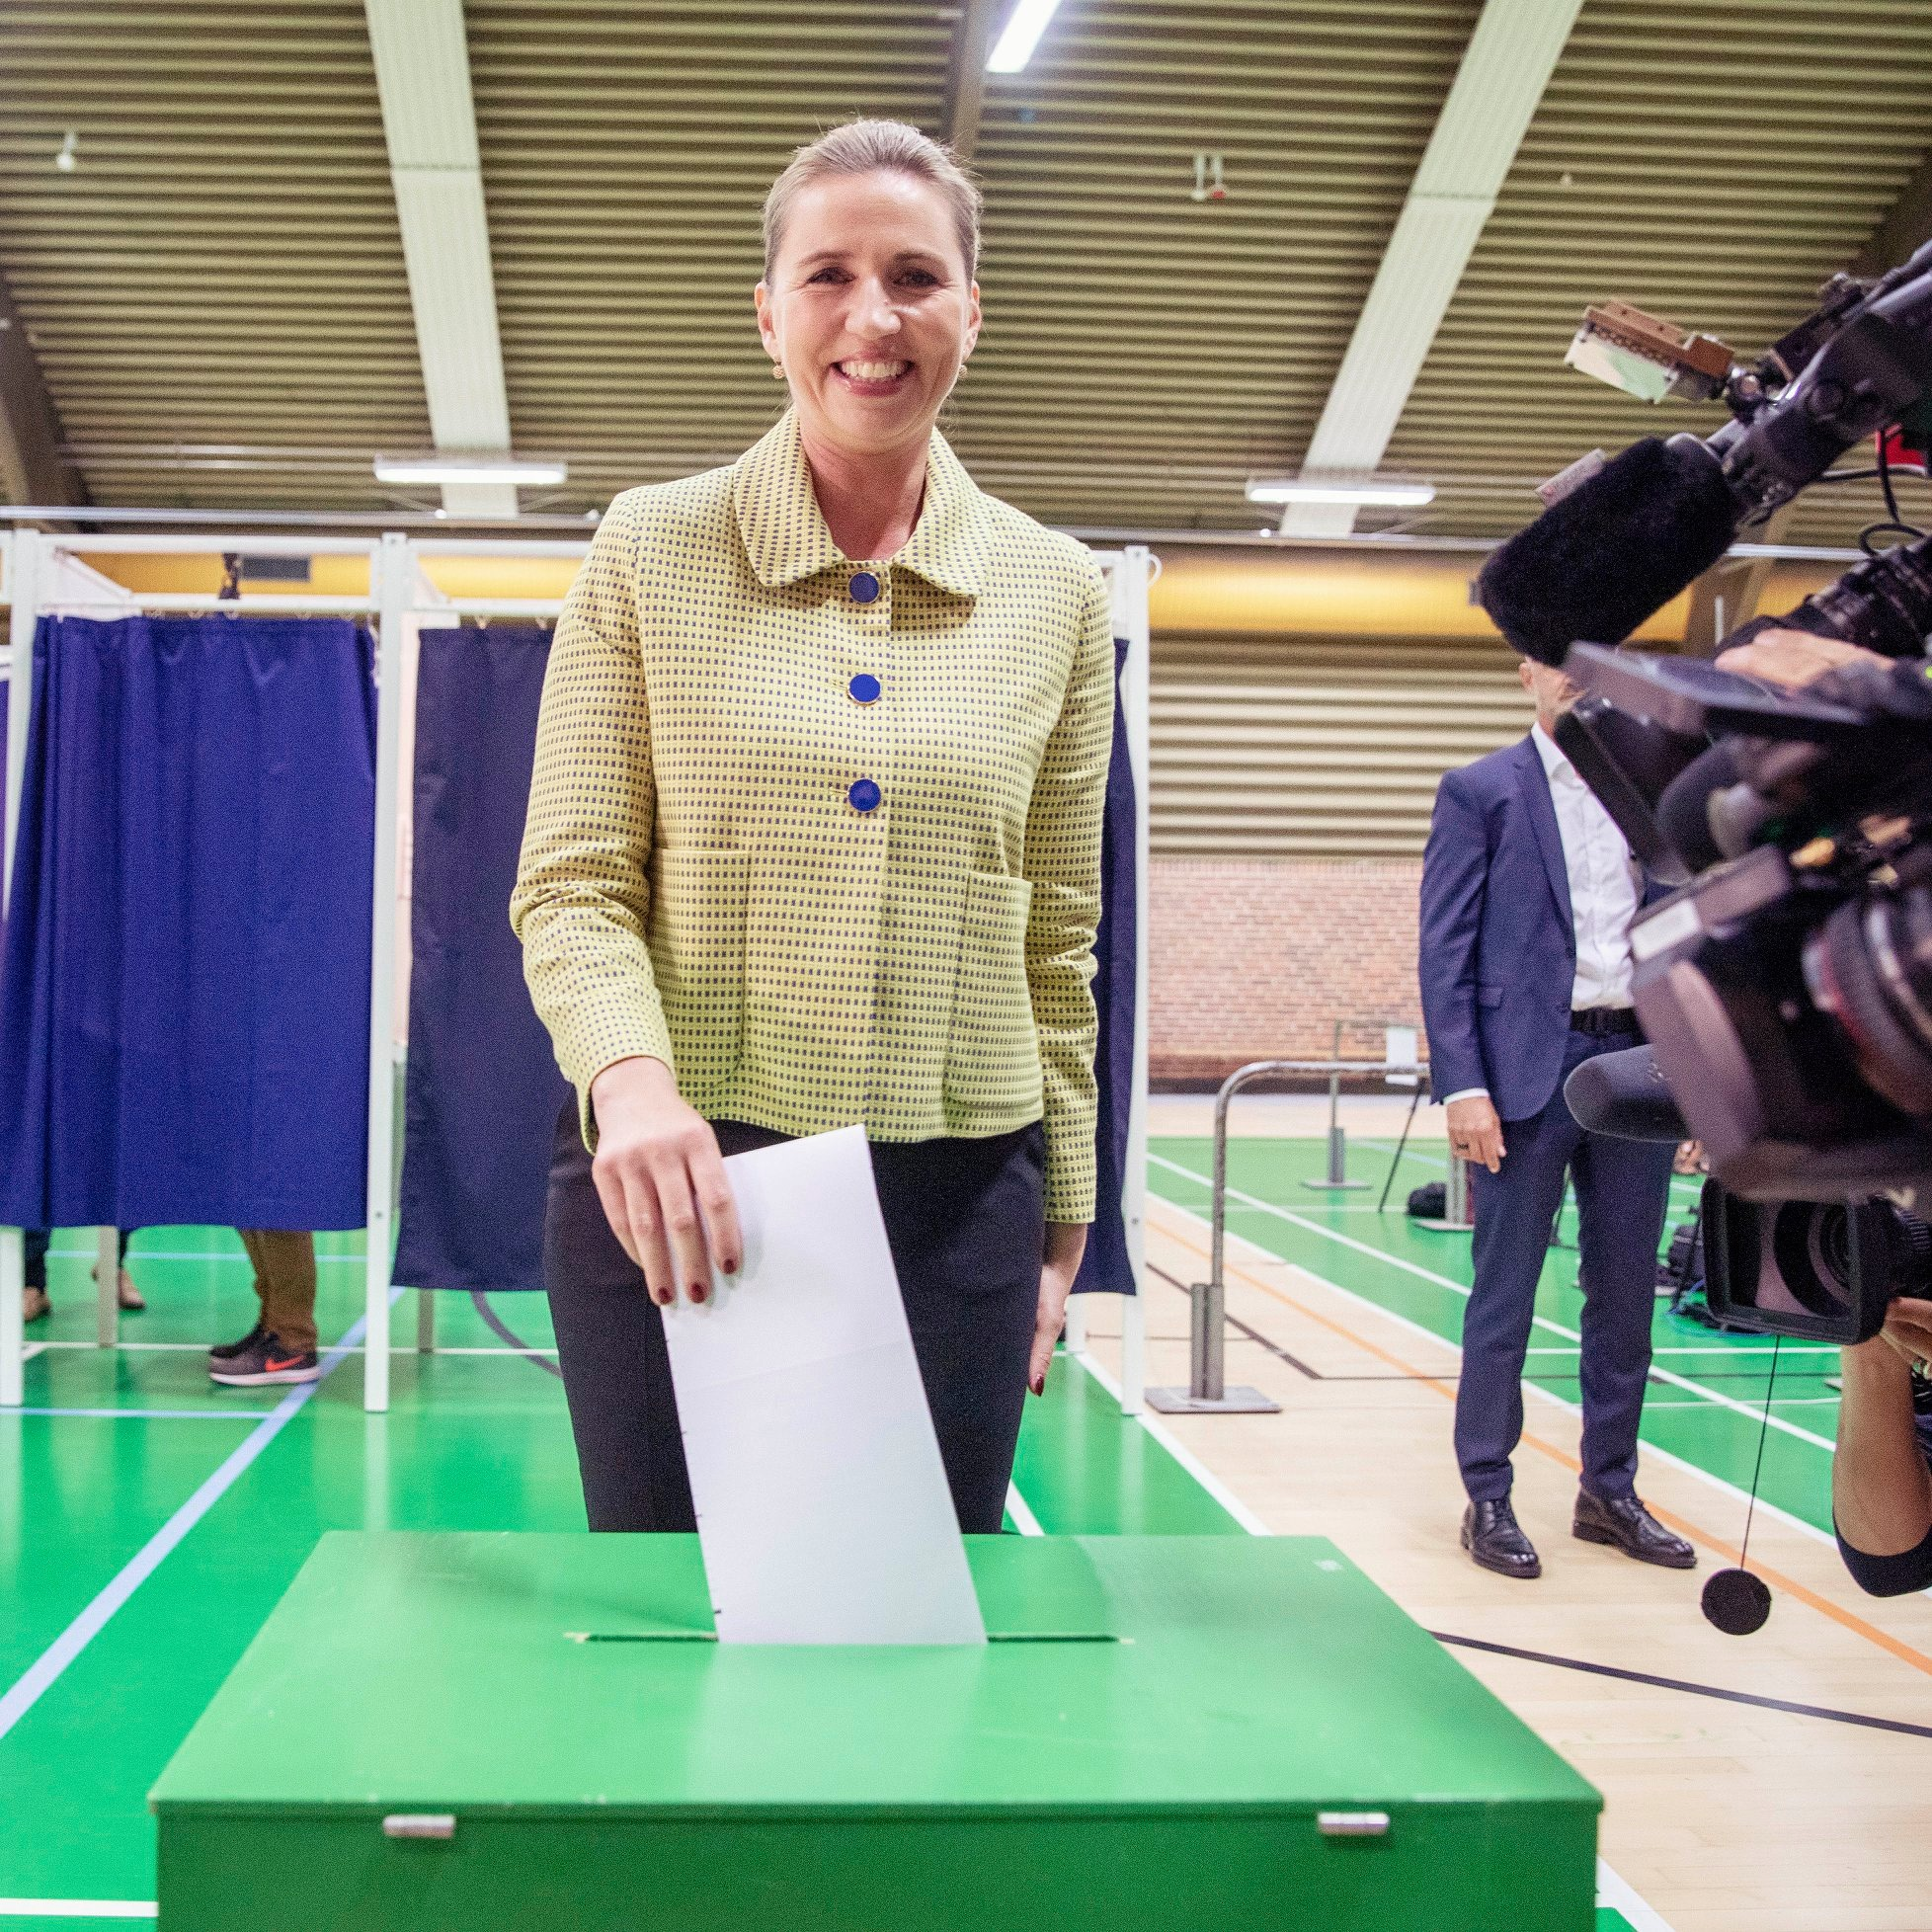 Mette Frederiksen, leader of the Social Democrats, casts her vote. She now leads tricky government negotiations. Credit: Socialdemokratiet